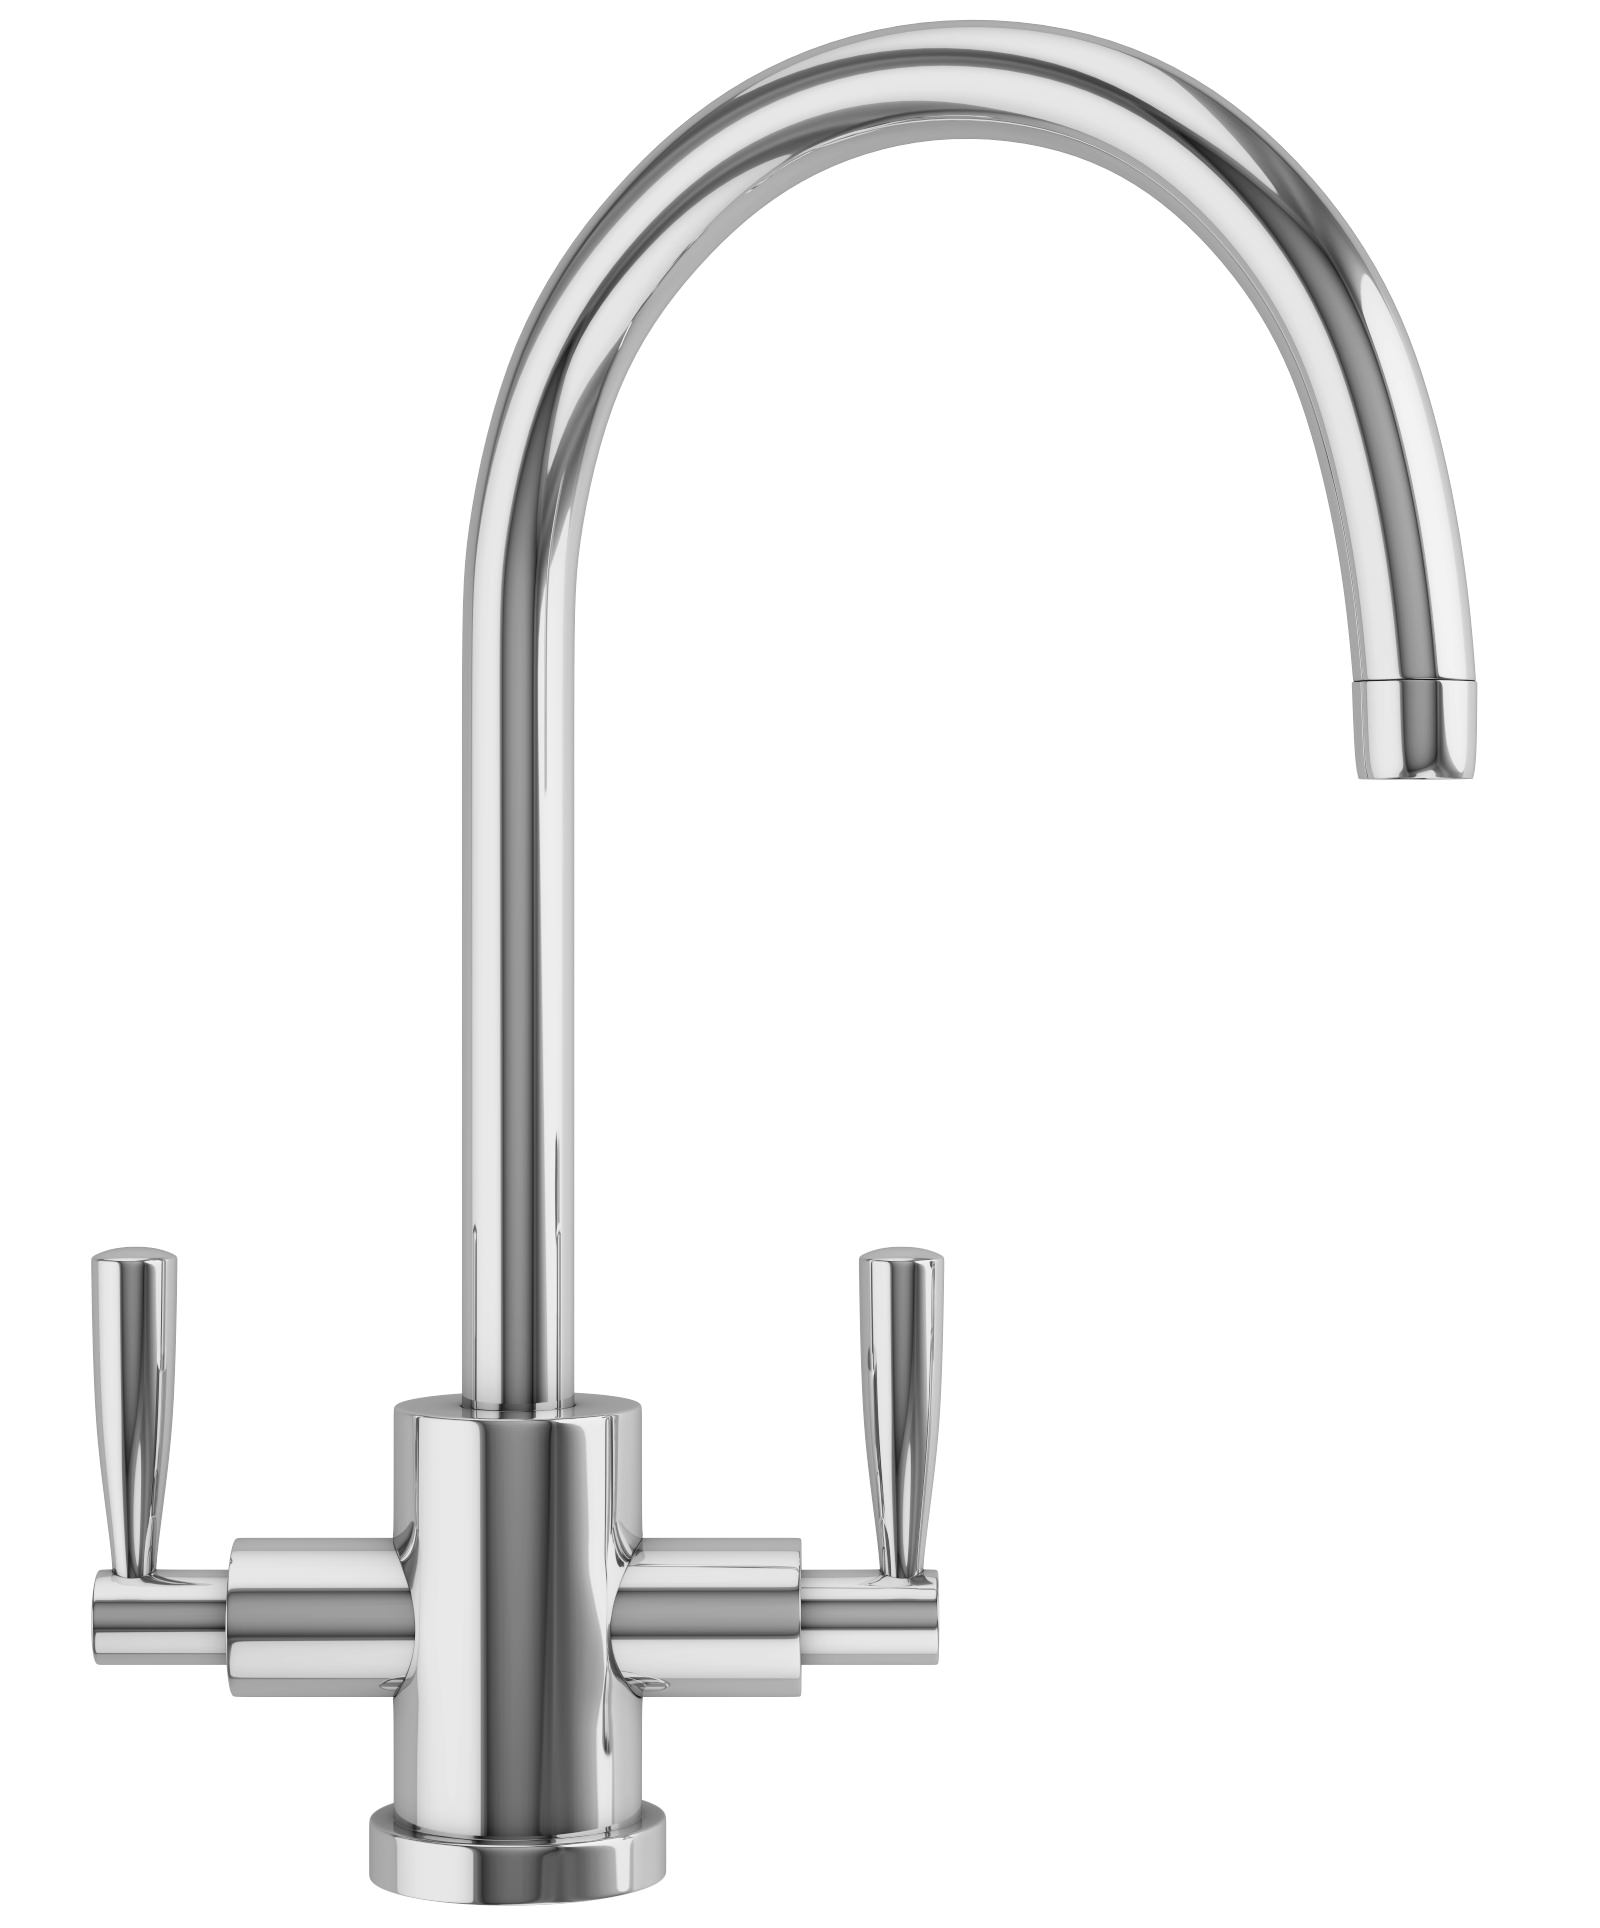 Franke Sinks And Taps : ... taps kitchen mixer taps franke olympus kitchen sink mixer tap chrome